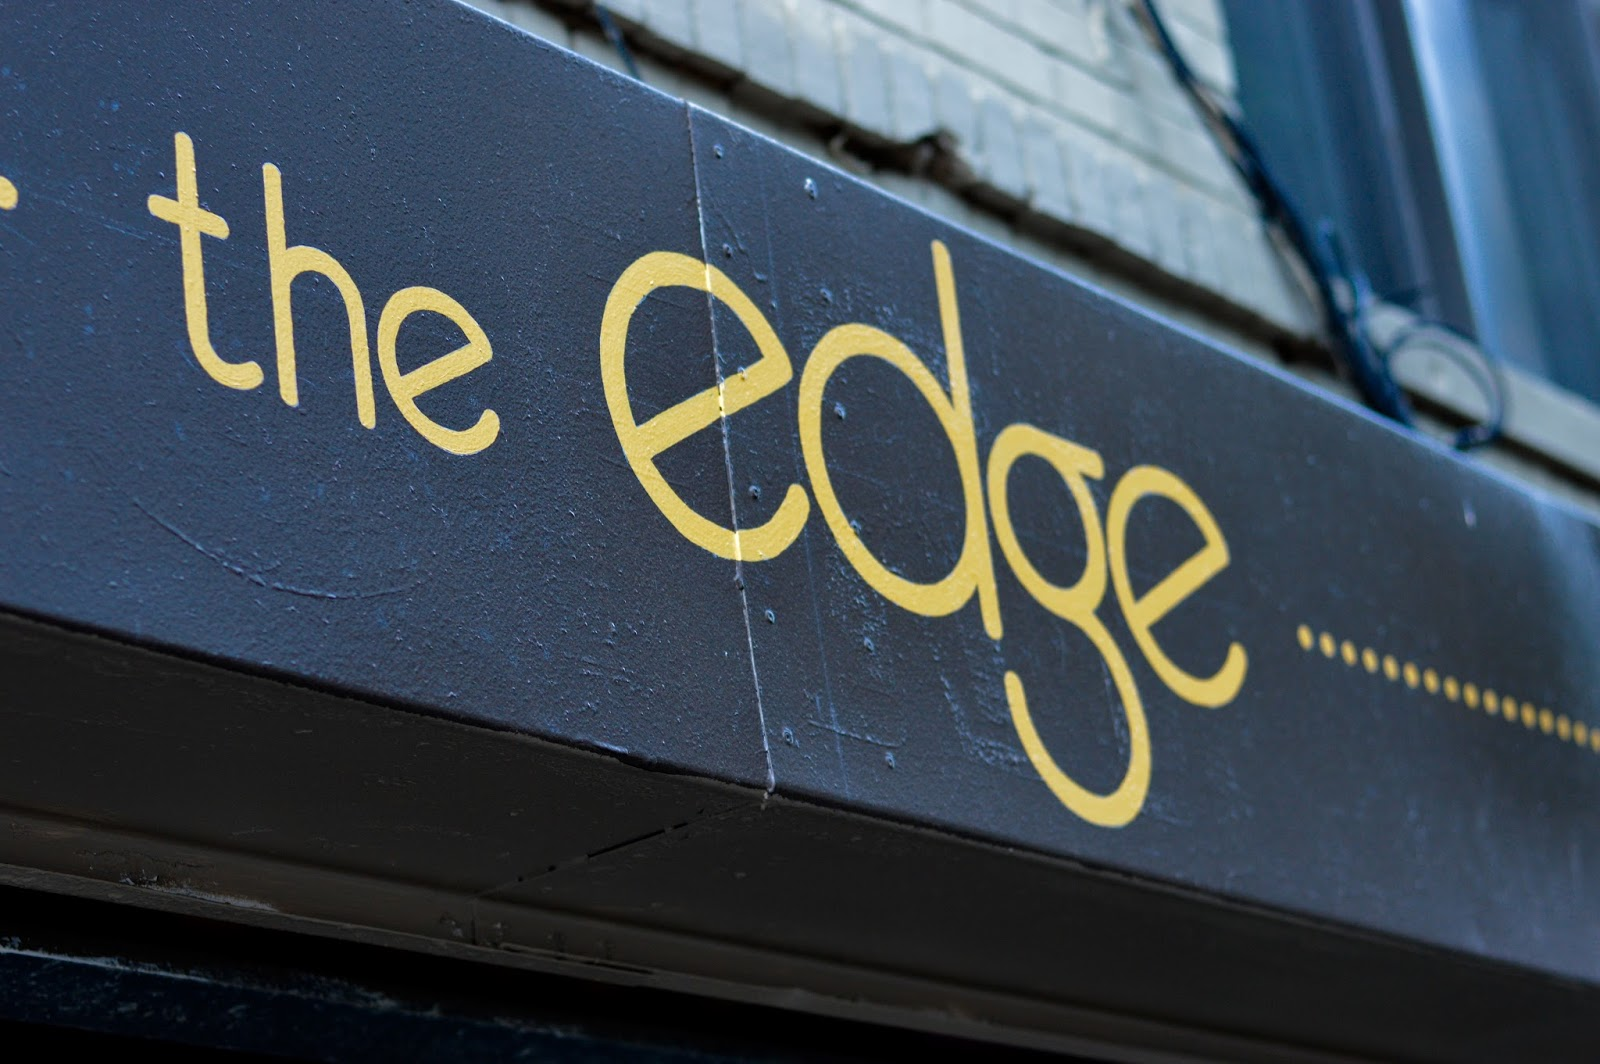 New Restaurant Alert: The Edge Harlem